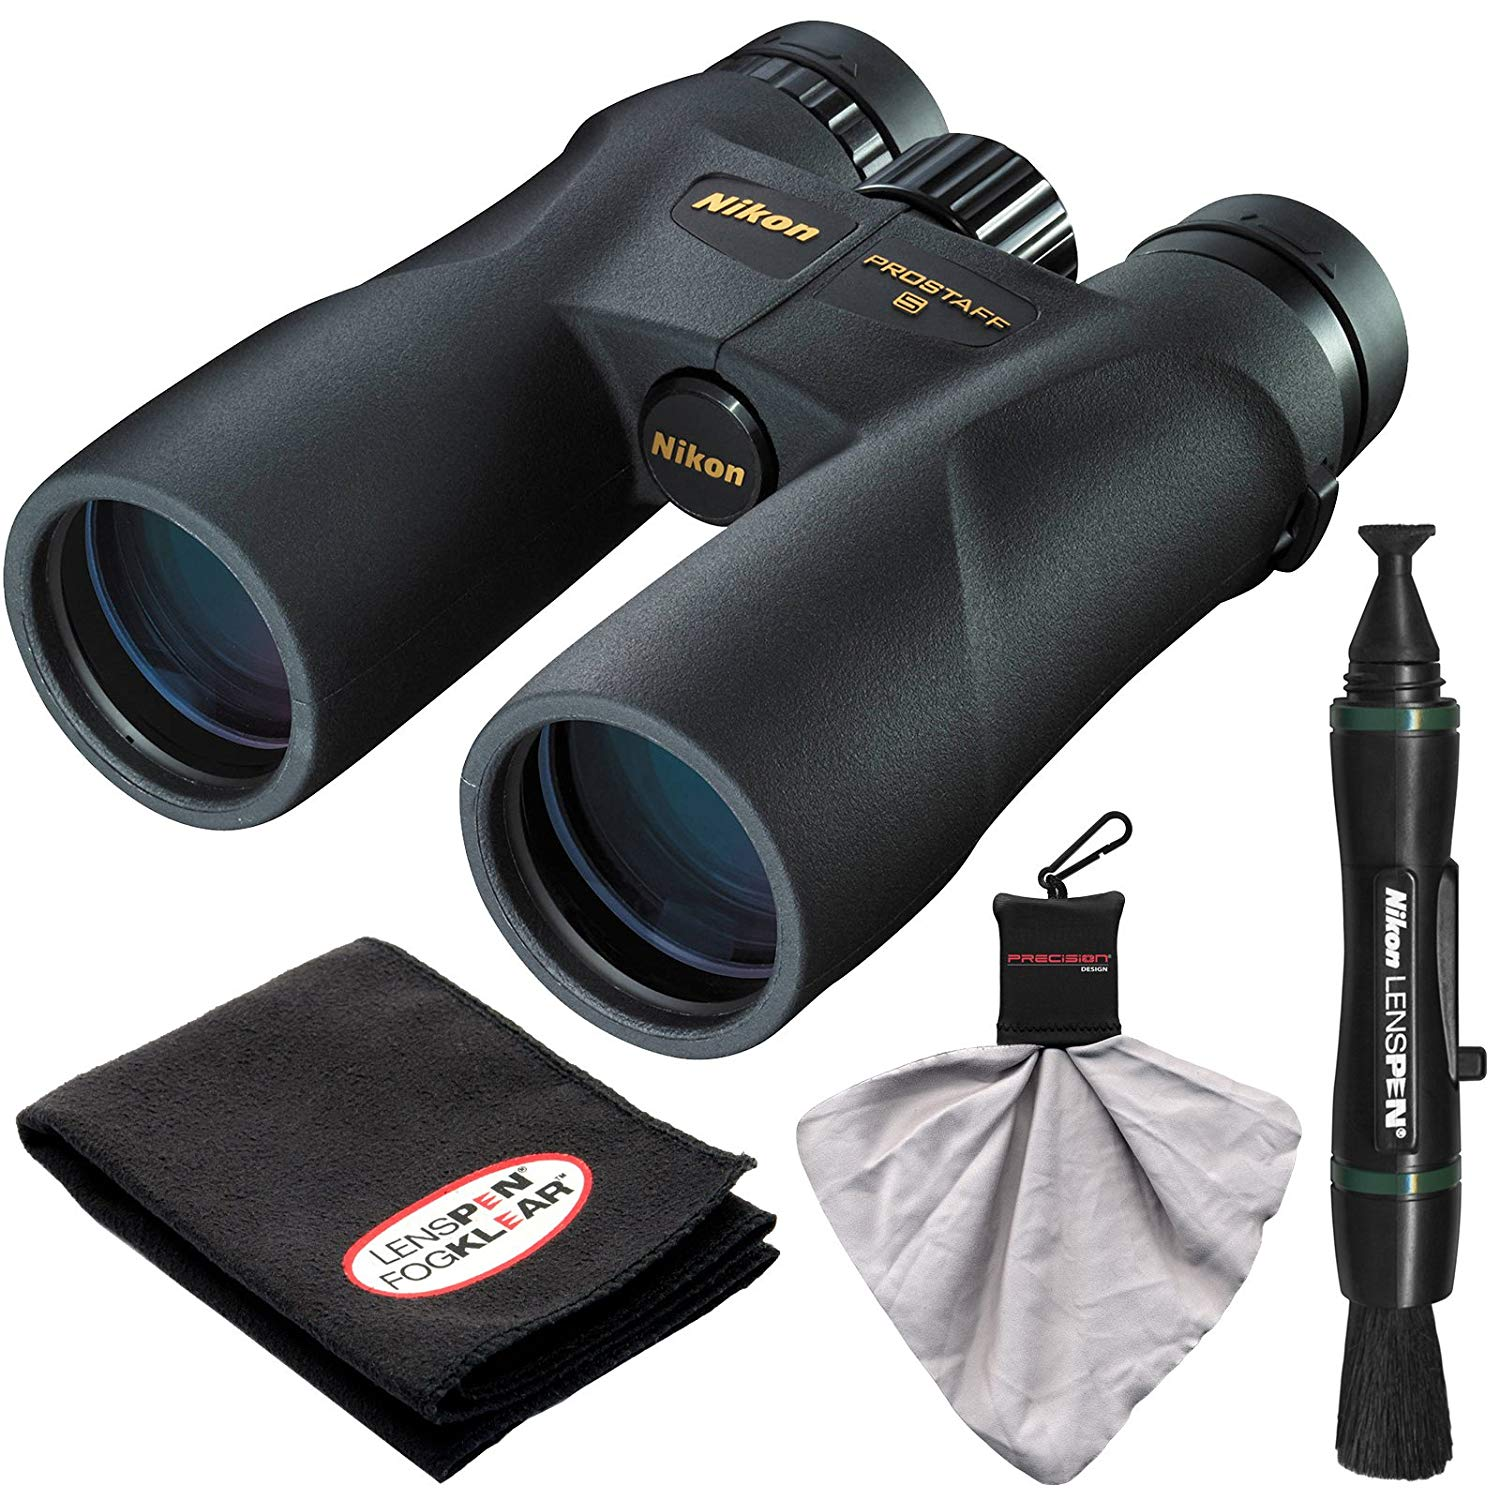 Top 10 Best Low Light Binoculars For Hunting 2021 Reviews 8